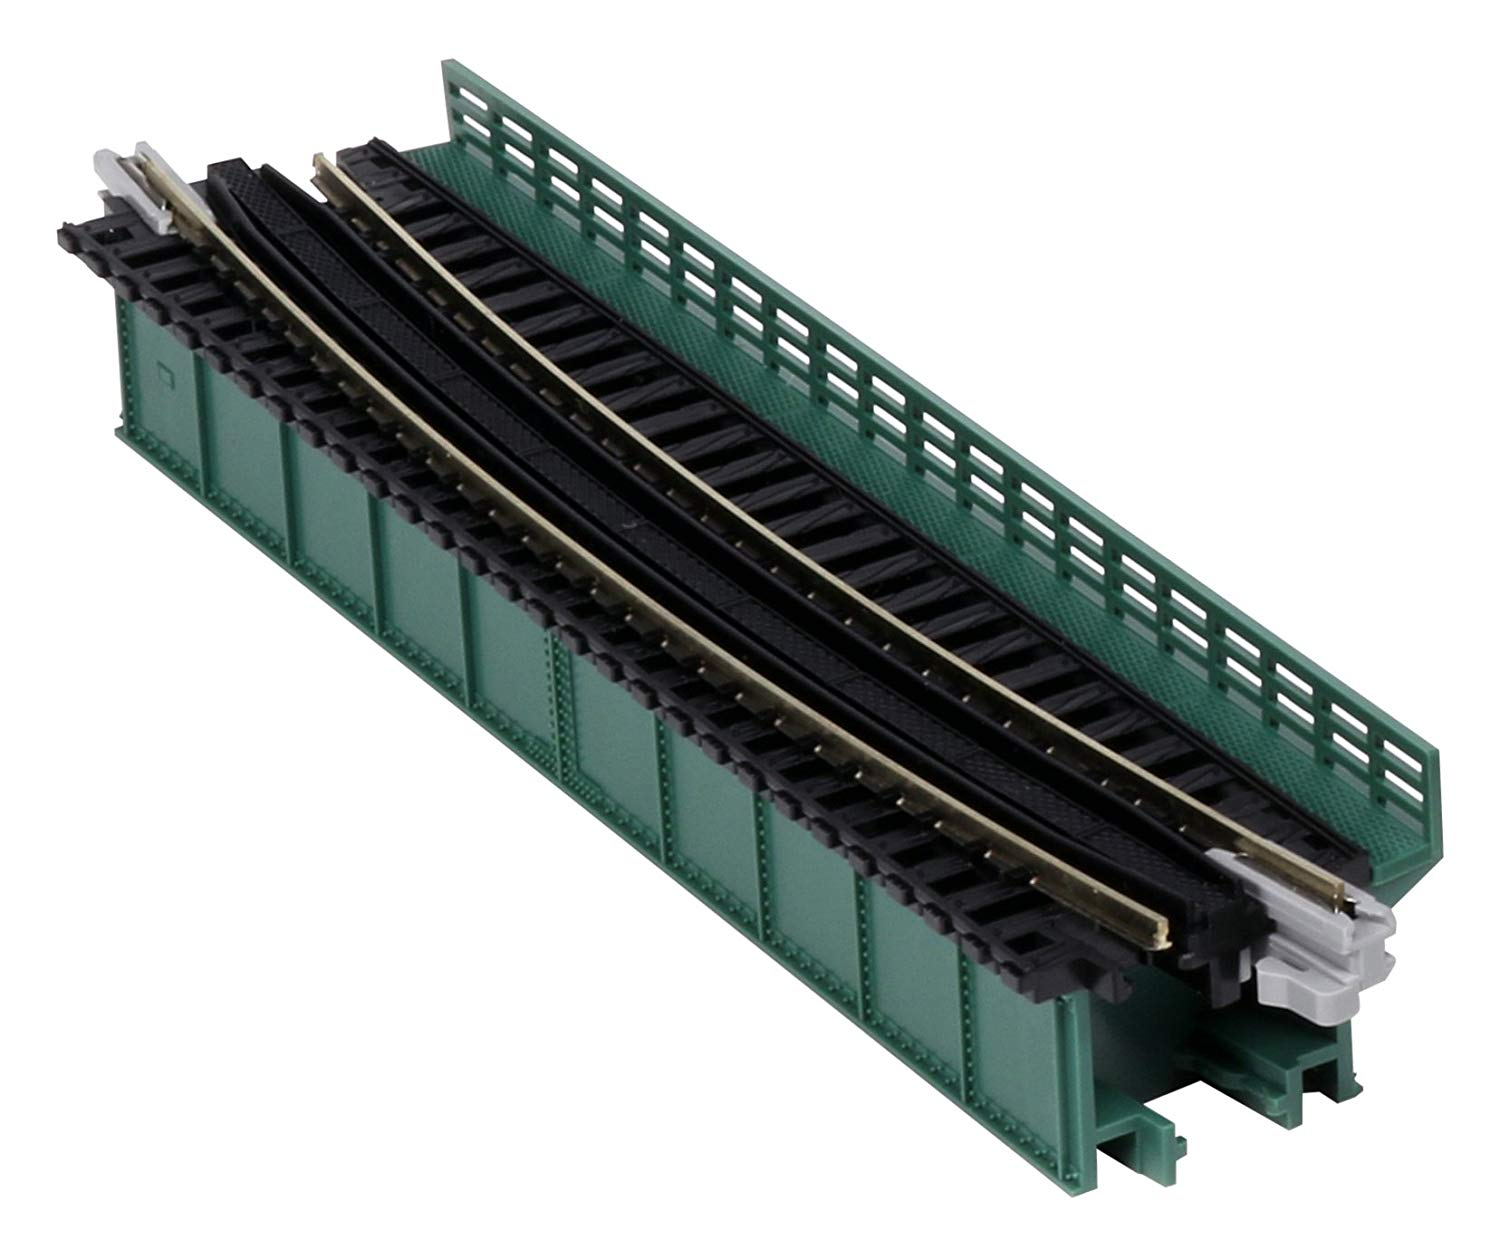 Kato 1/150 single line girder curved bridge r448-15 ° (green) -uni-track- -20-466- Japan used like n